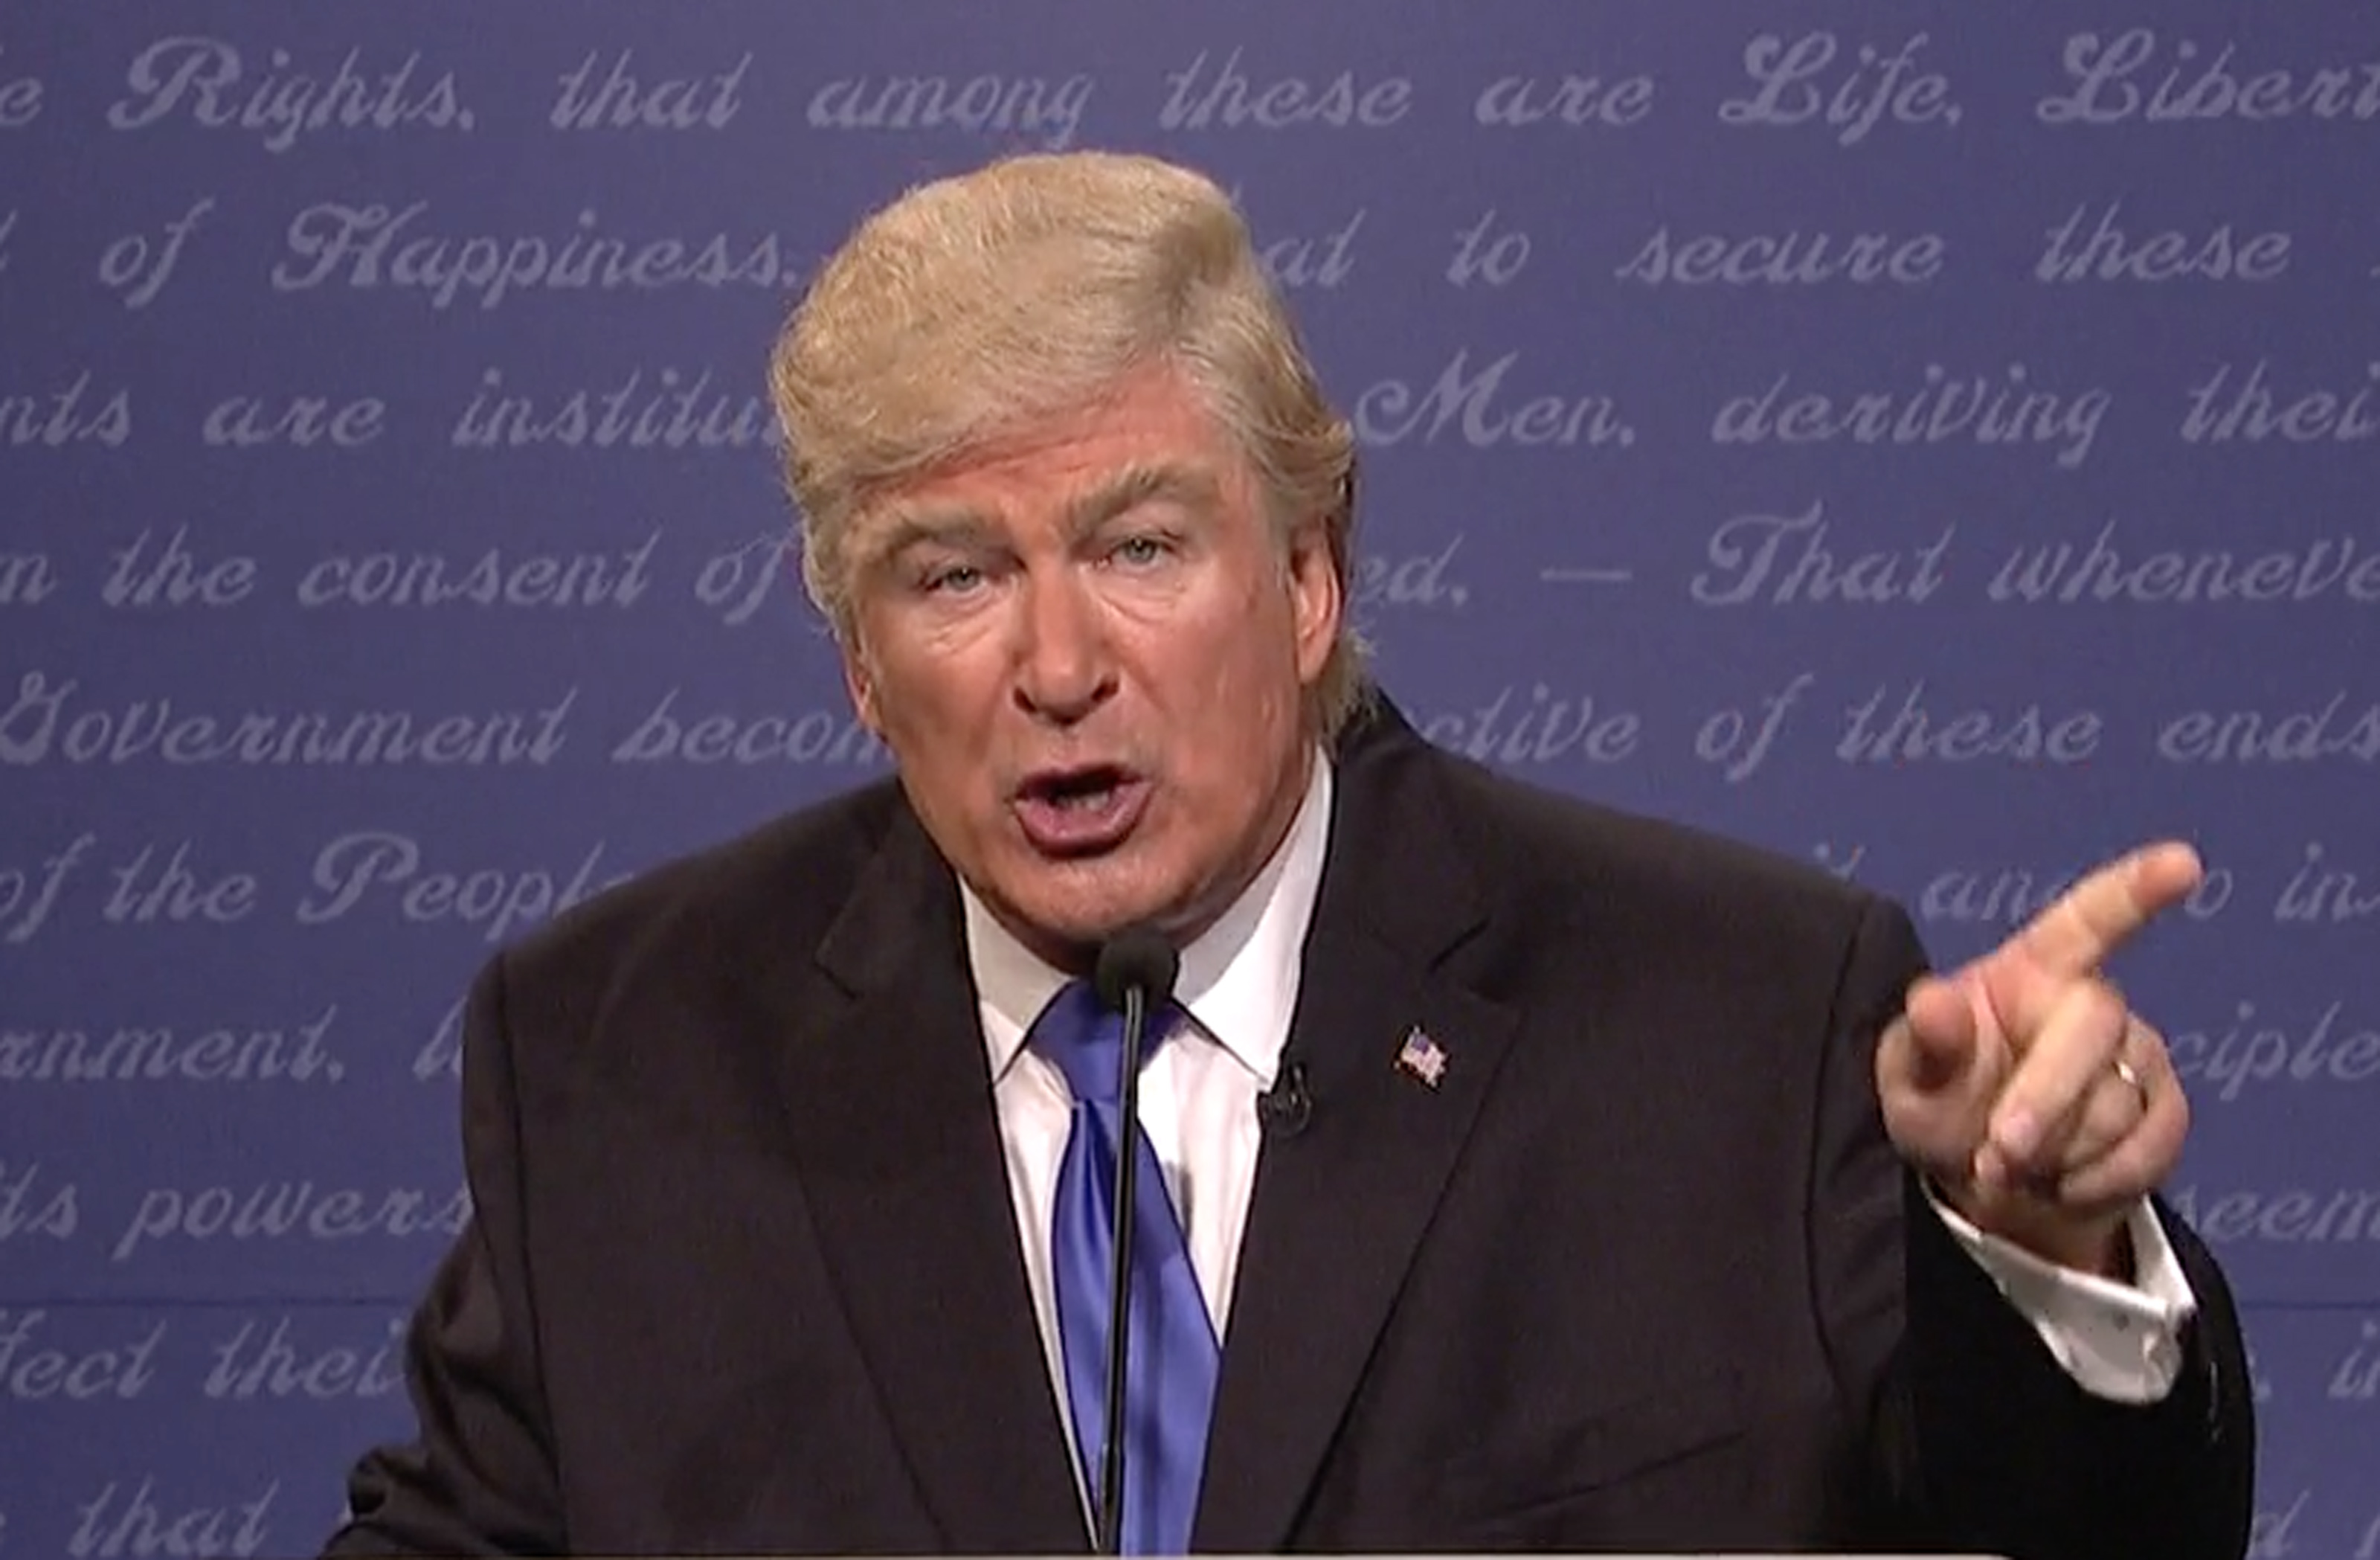 Watch a sniffing and pouting Alec Baldwin nail his Donald Trump impression!